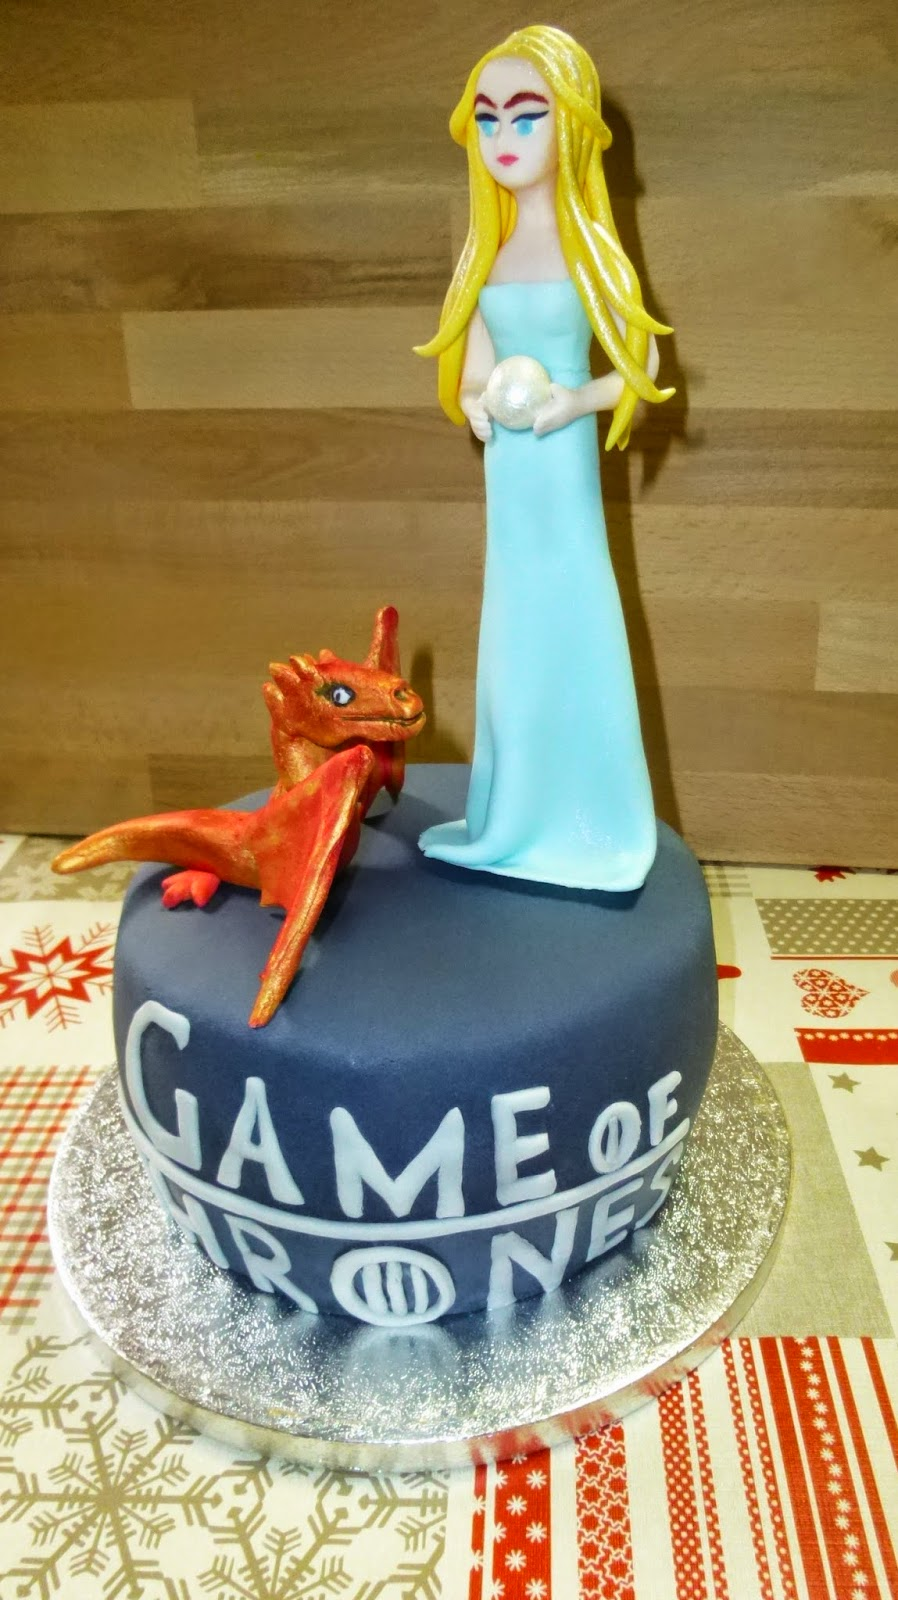 bluebelldreams cupcakes game of thrones torte. Black Bedroom Furniture Sets. Home Design Ideas